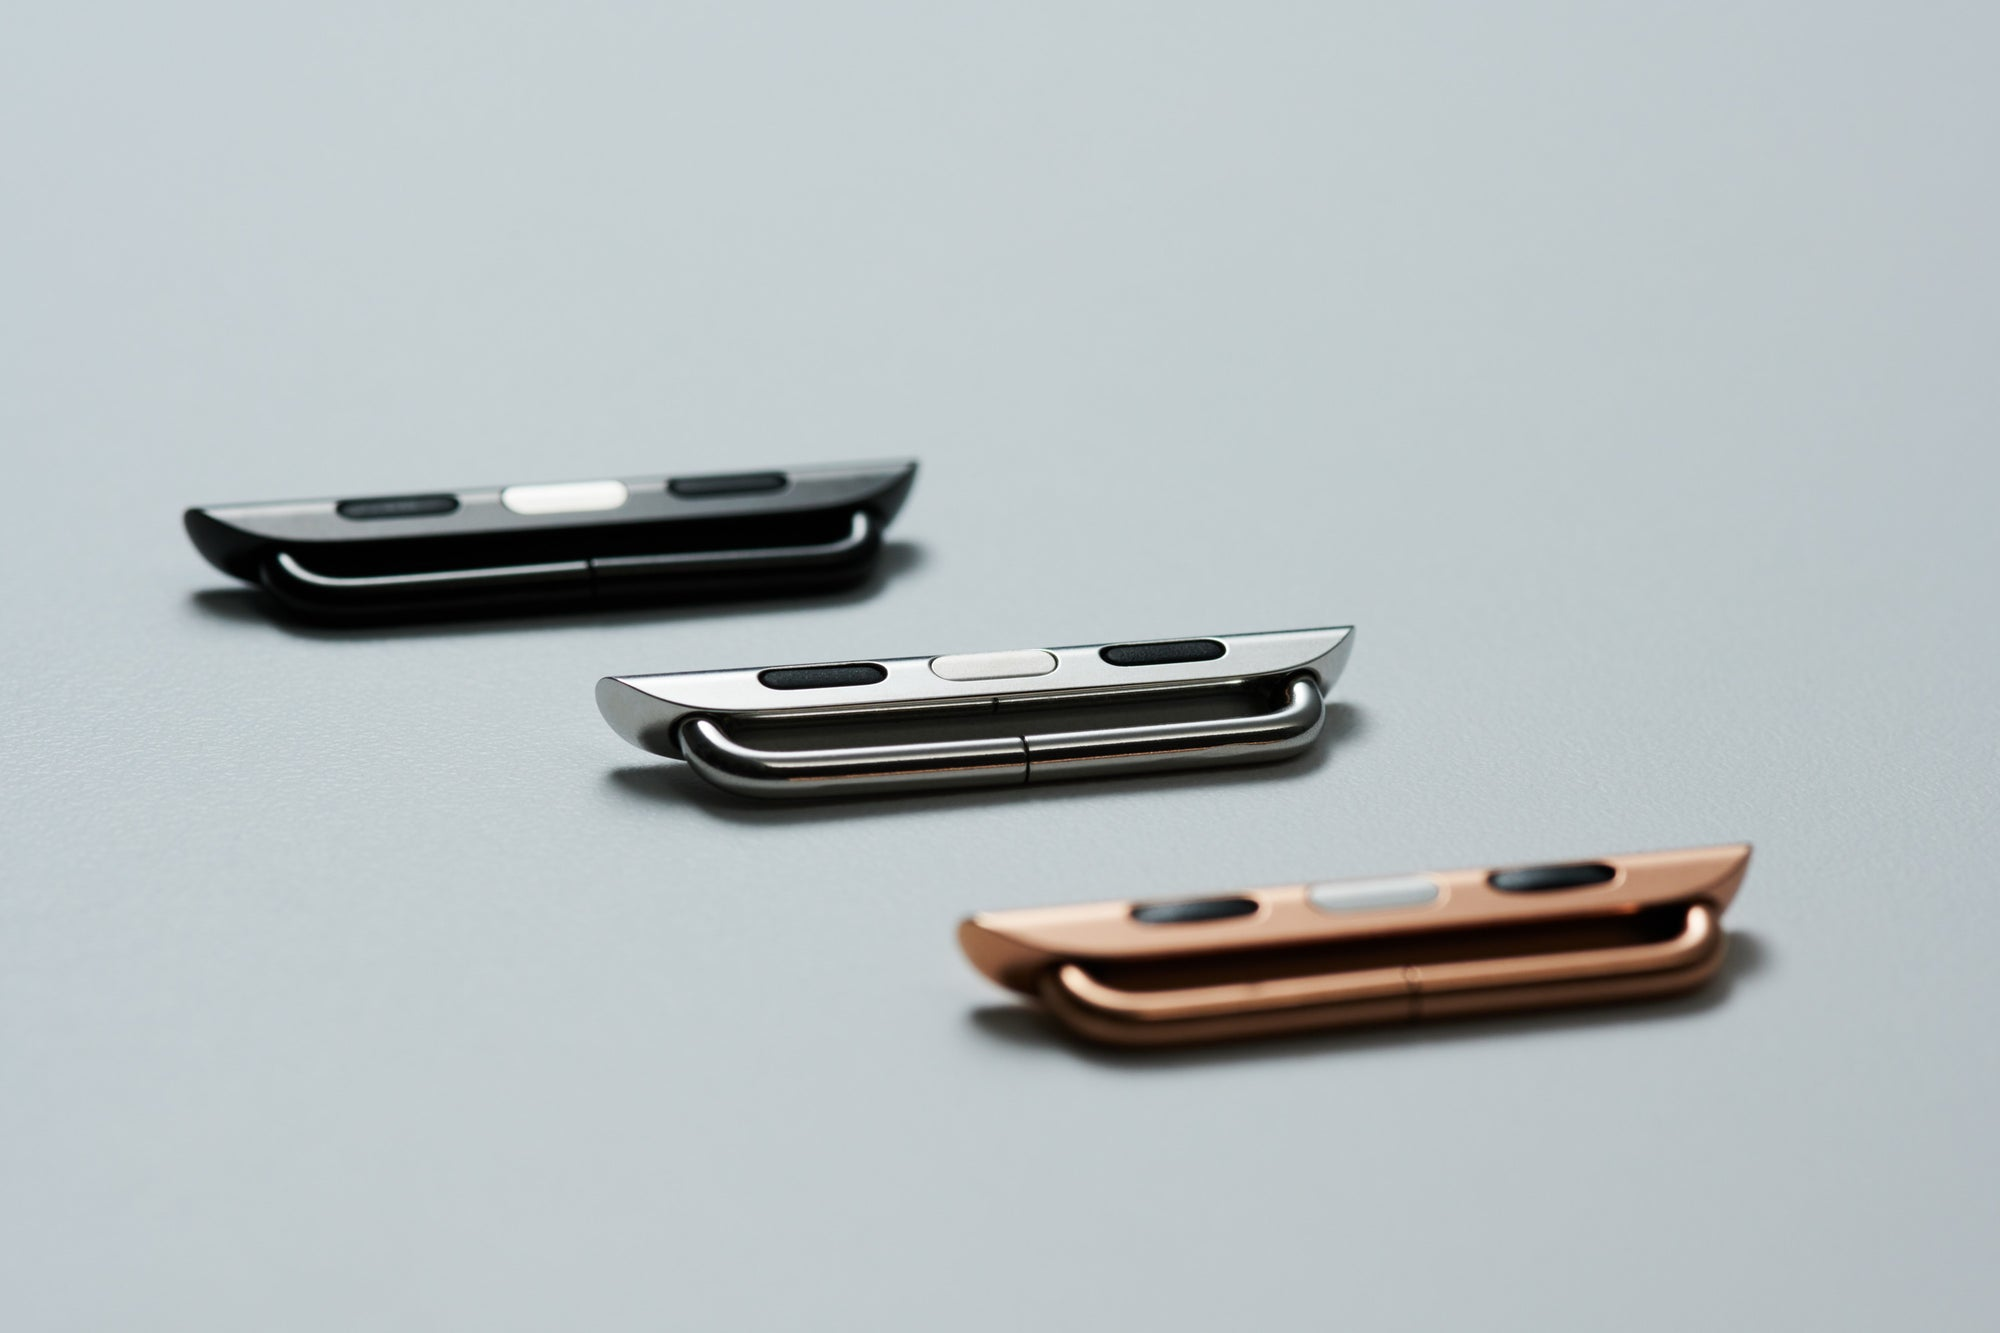 Leather Apple Watch Bands by Pin & Buckle - Polished Stainless Steel Adapters in Silver Gold and Black